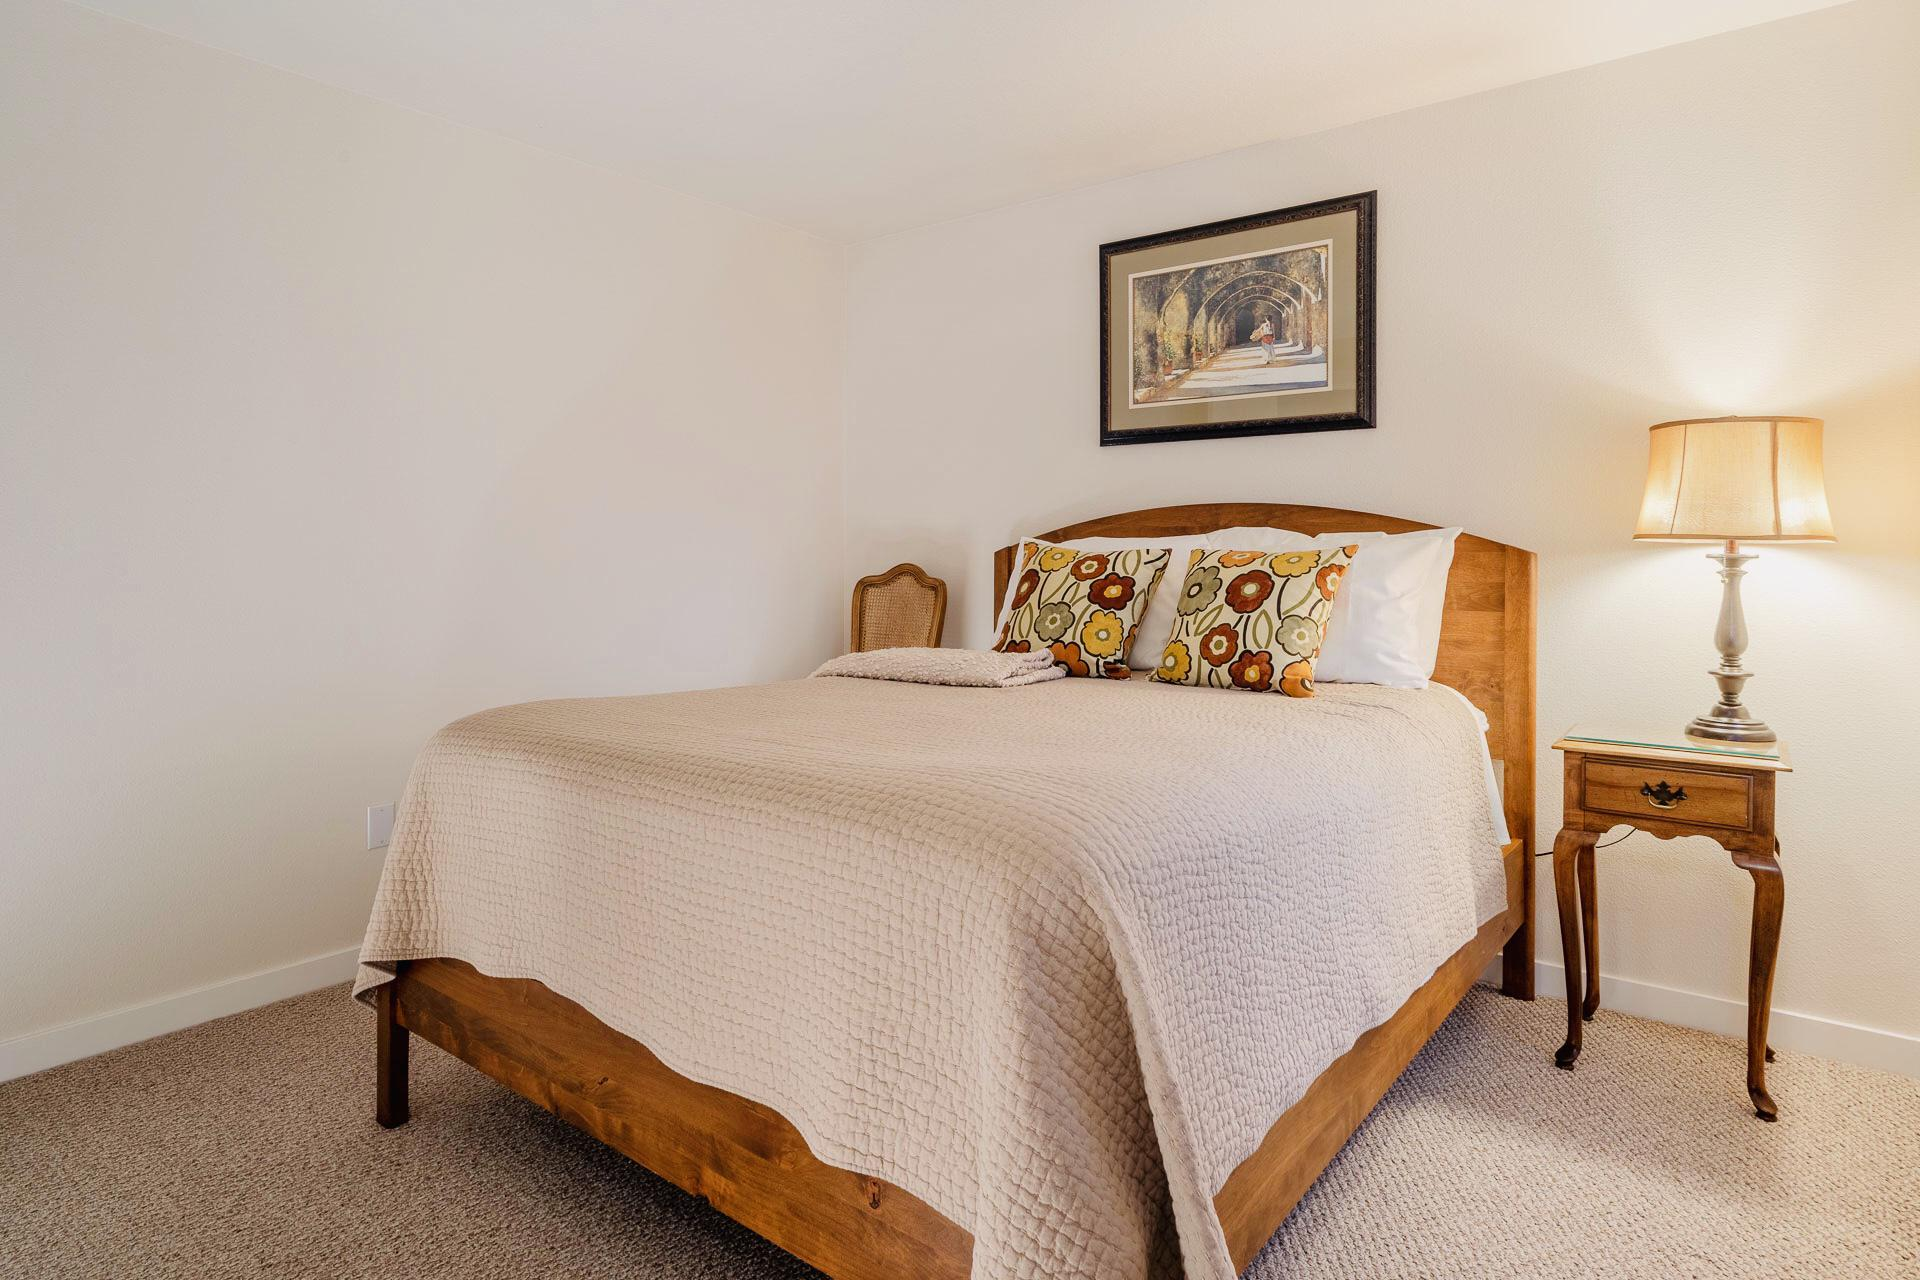 Second Bedroom - Stylish Art and Furnishings